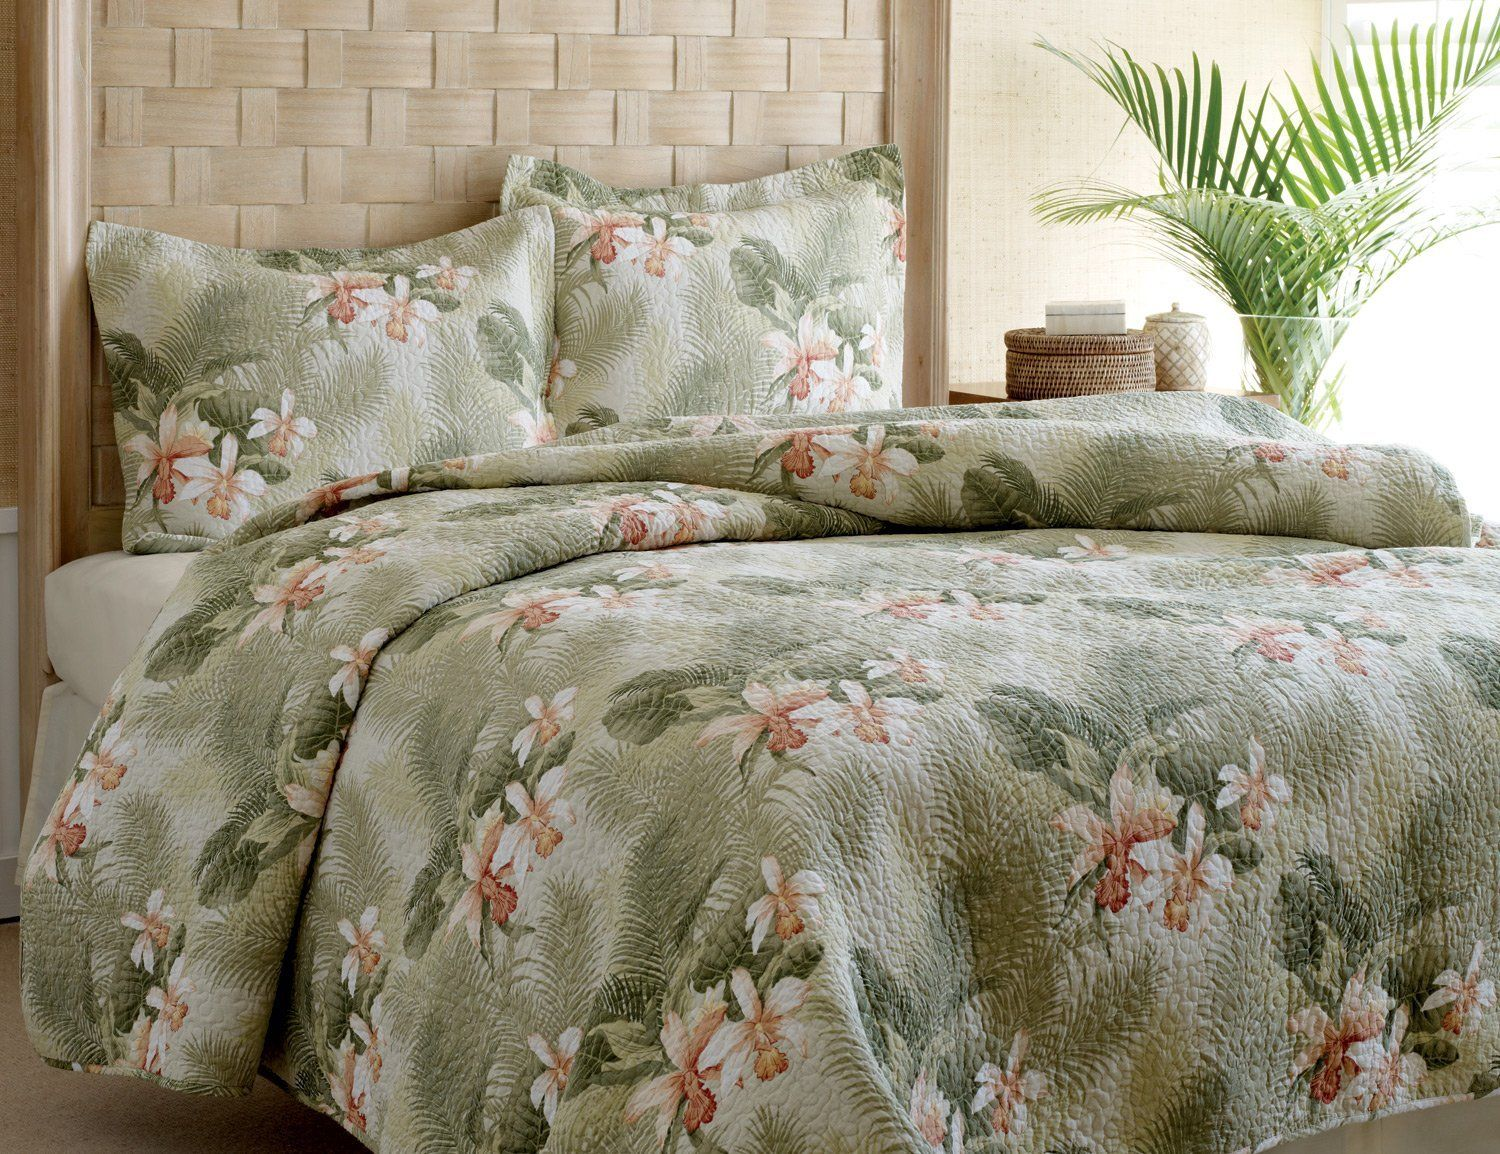 Amazon tommy bahama topical orchid quilt set fullqueen amazon tommy bahama topical orchid quilt set fullqueen gumiabroncs Gallery